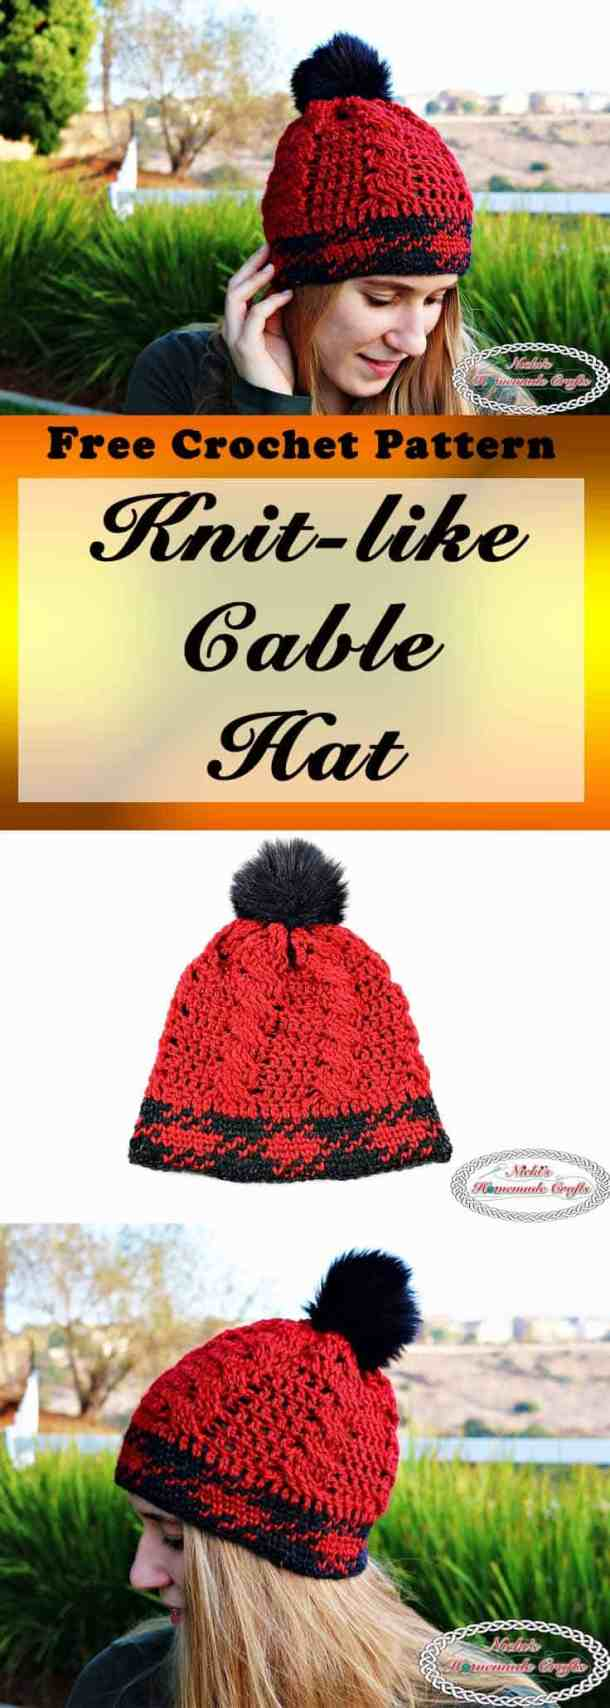 Knit-like Cable Hat with Faux Fur Pom-Pom - Free Crochet Pattern